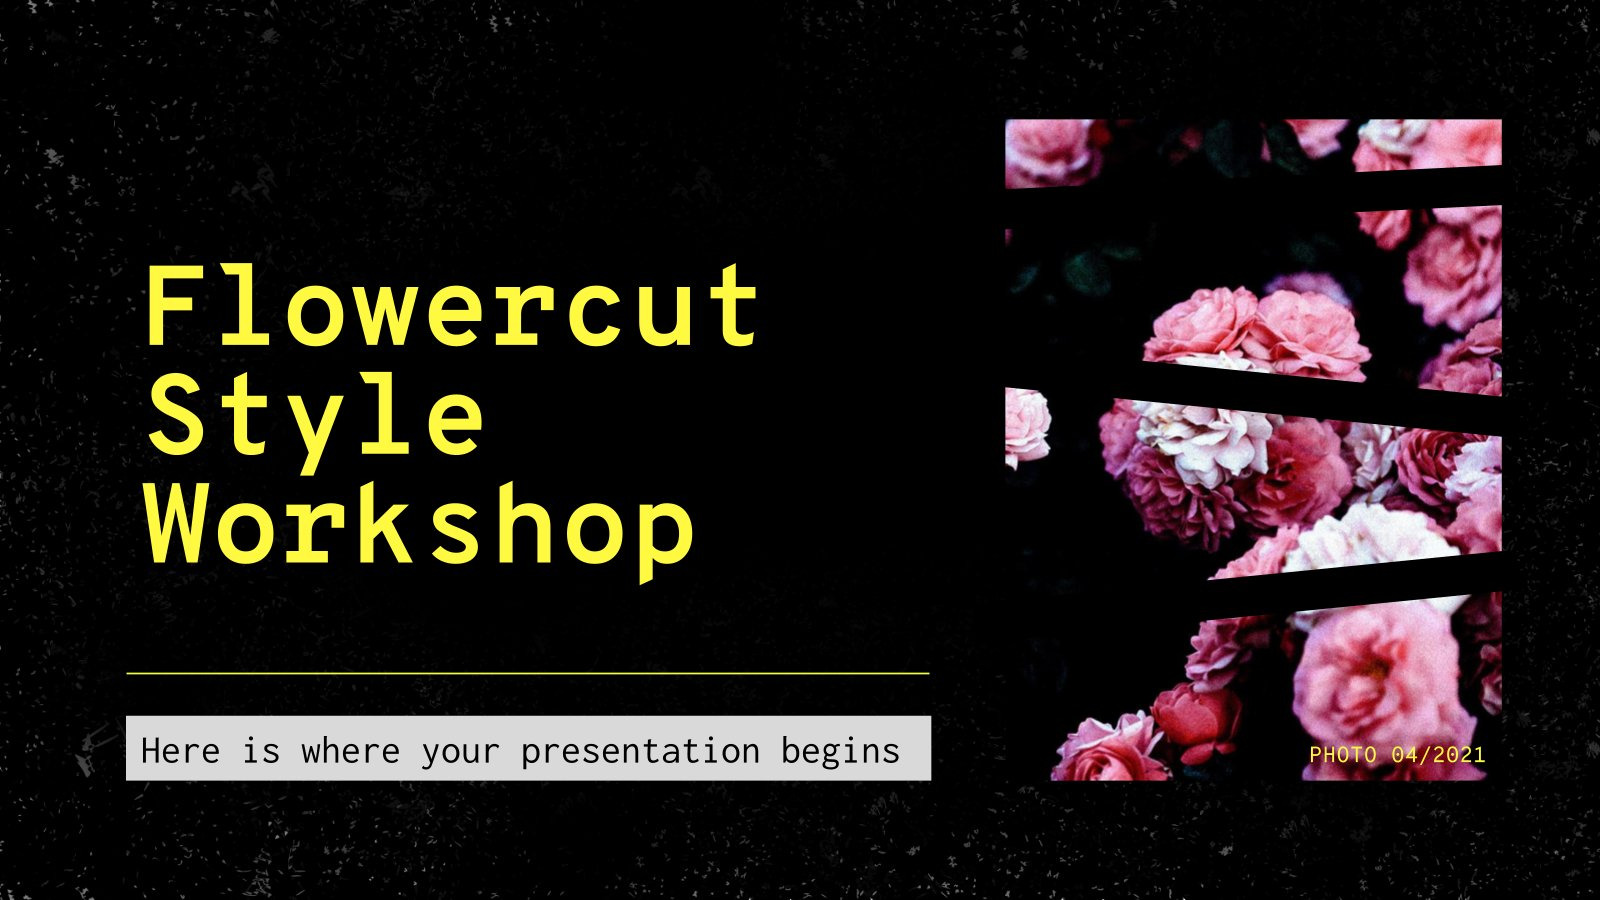 Flowercut Style Workshop presentation template